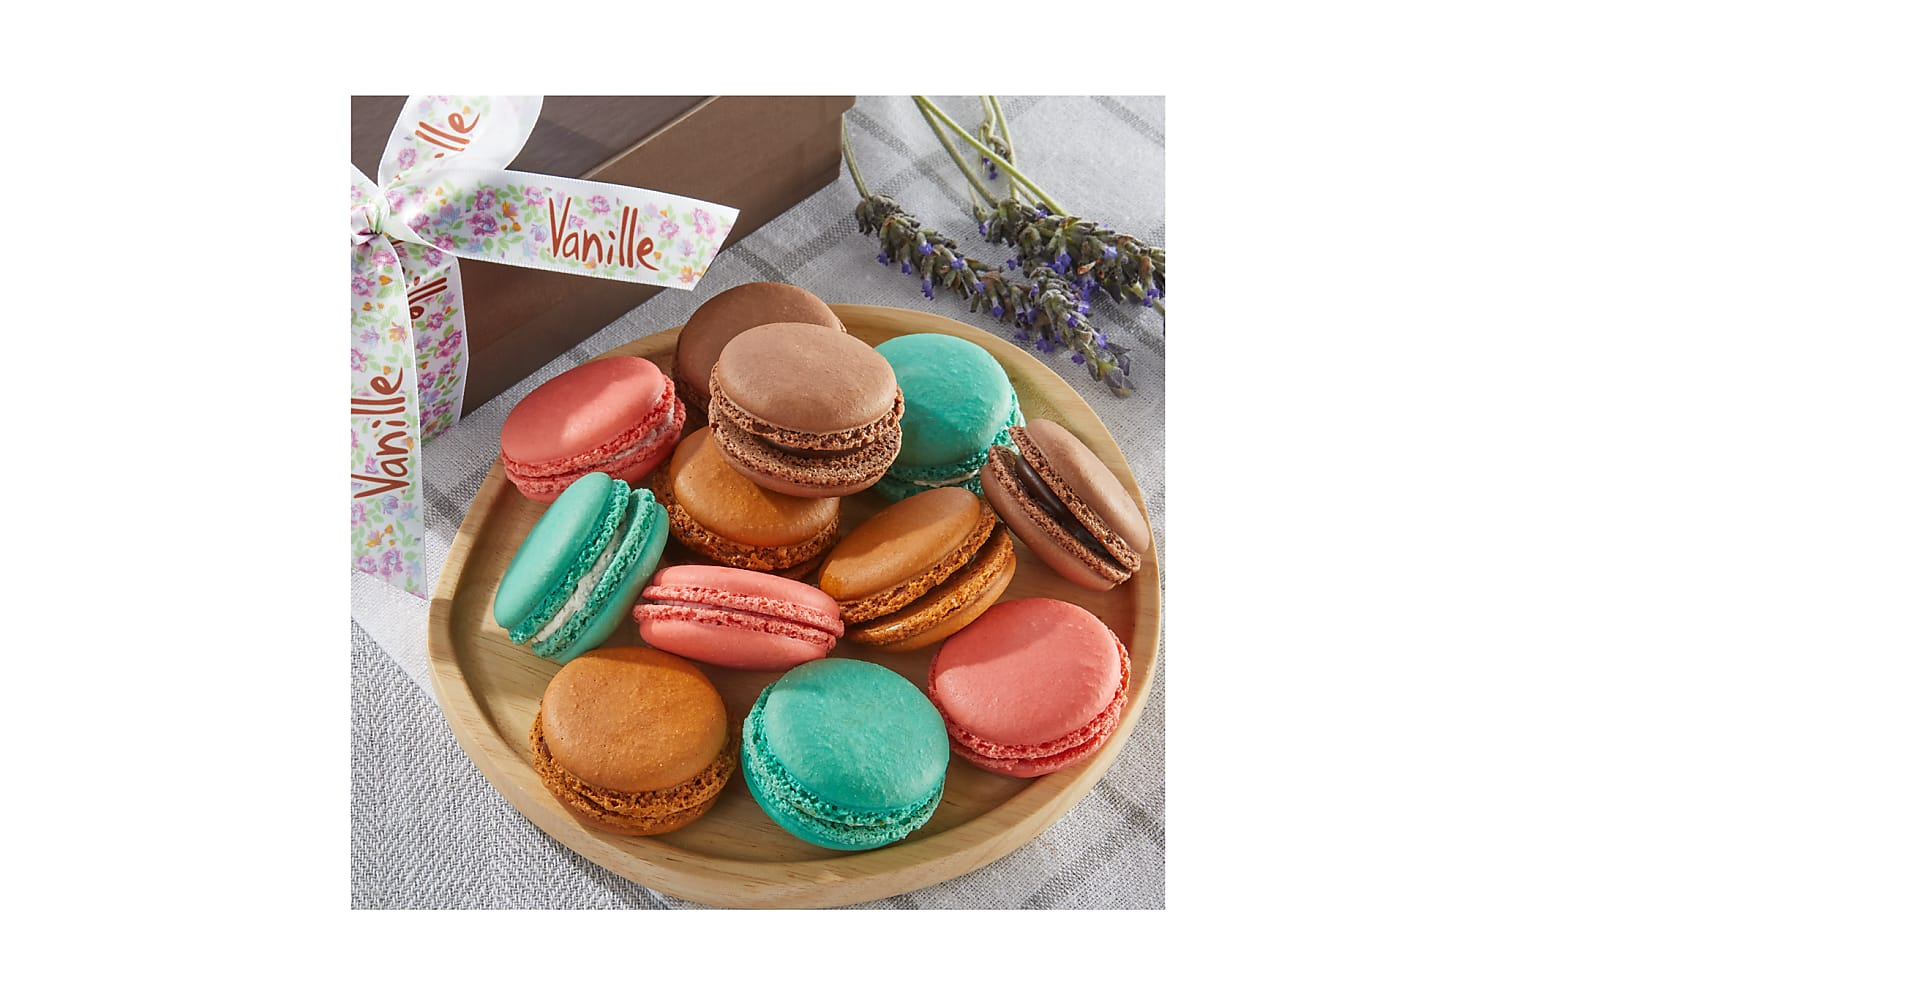 One Dozen Floral Macarons - Image 1 Of 3